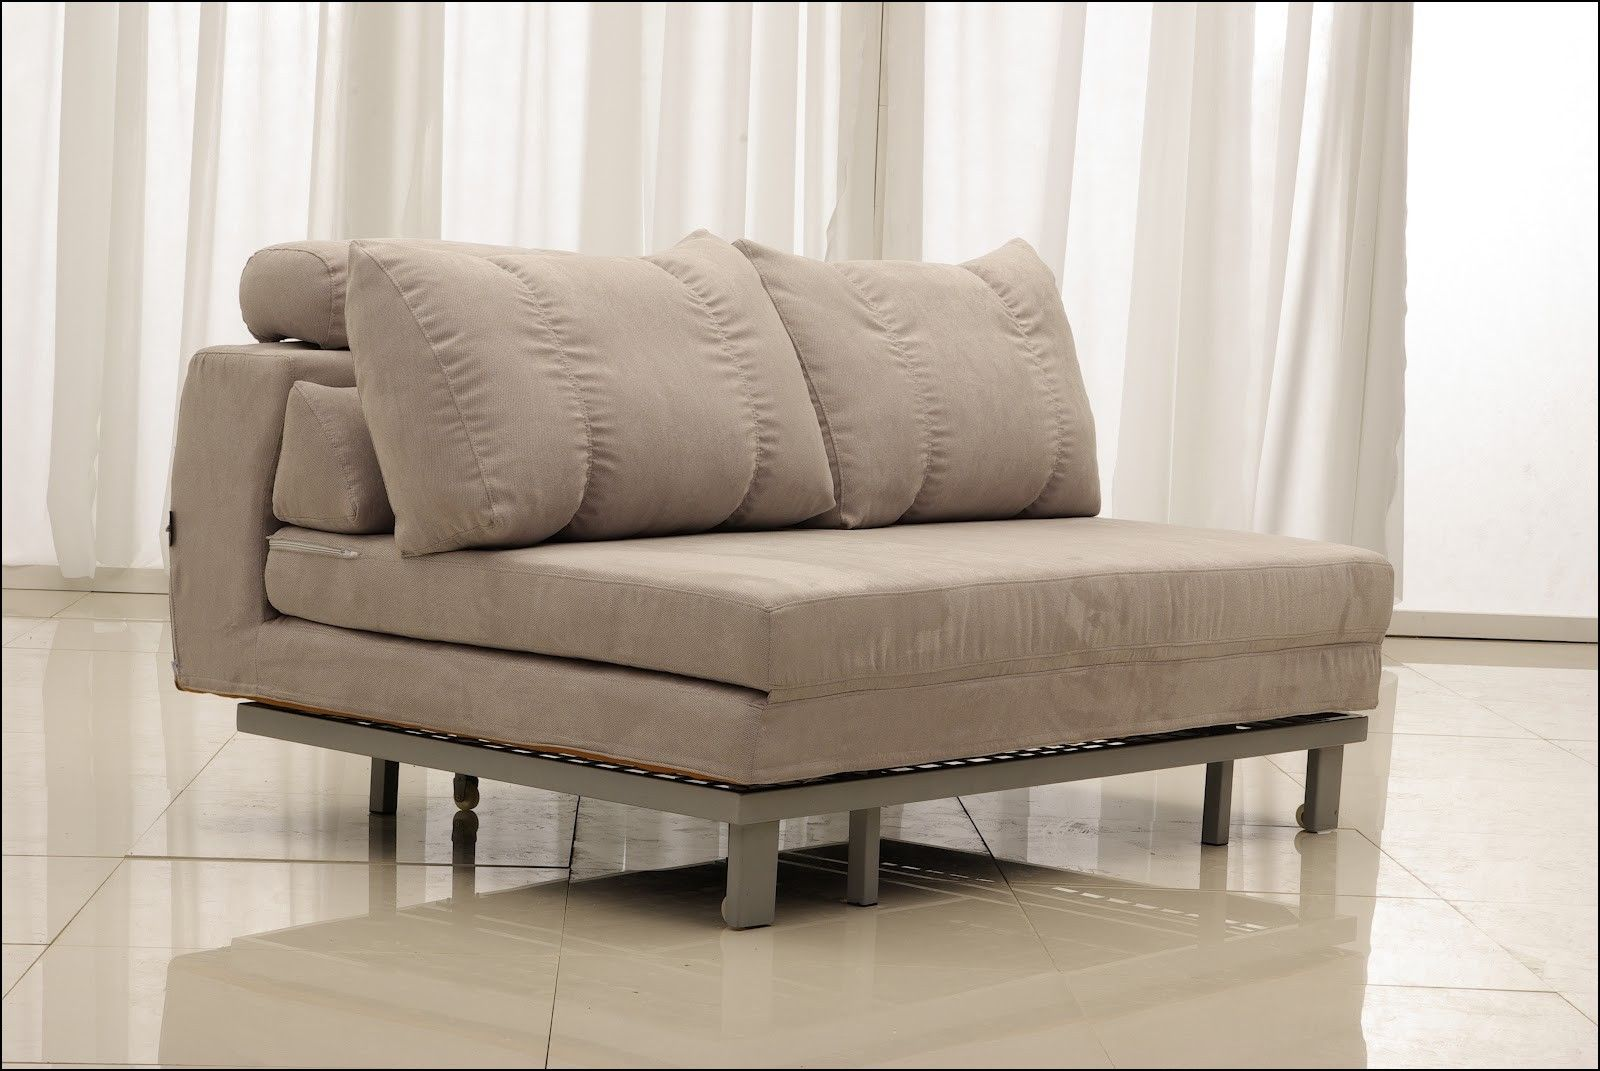 Most Comfortable Sofa Bed Ever